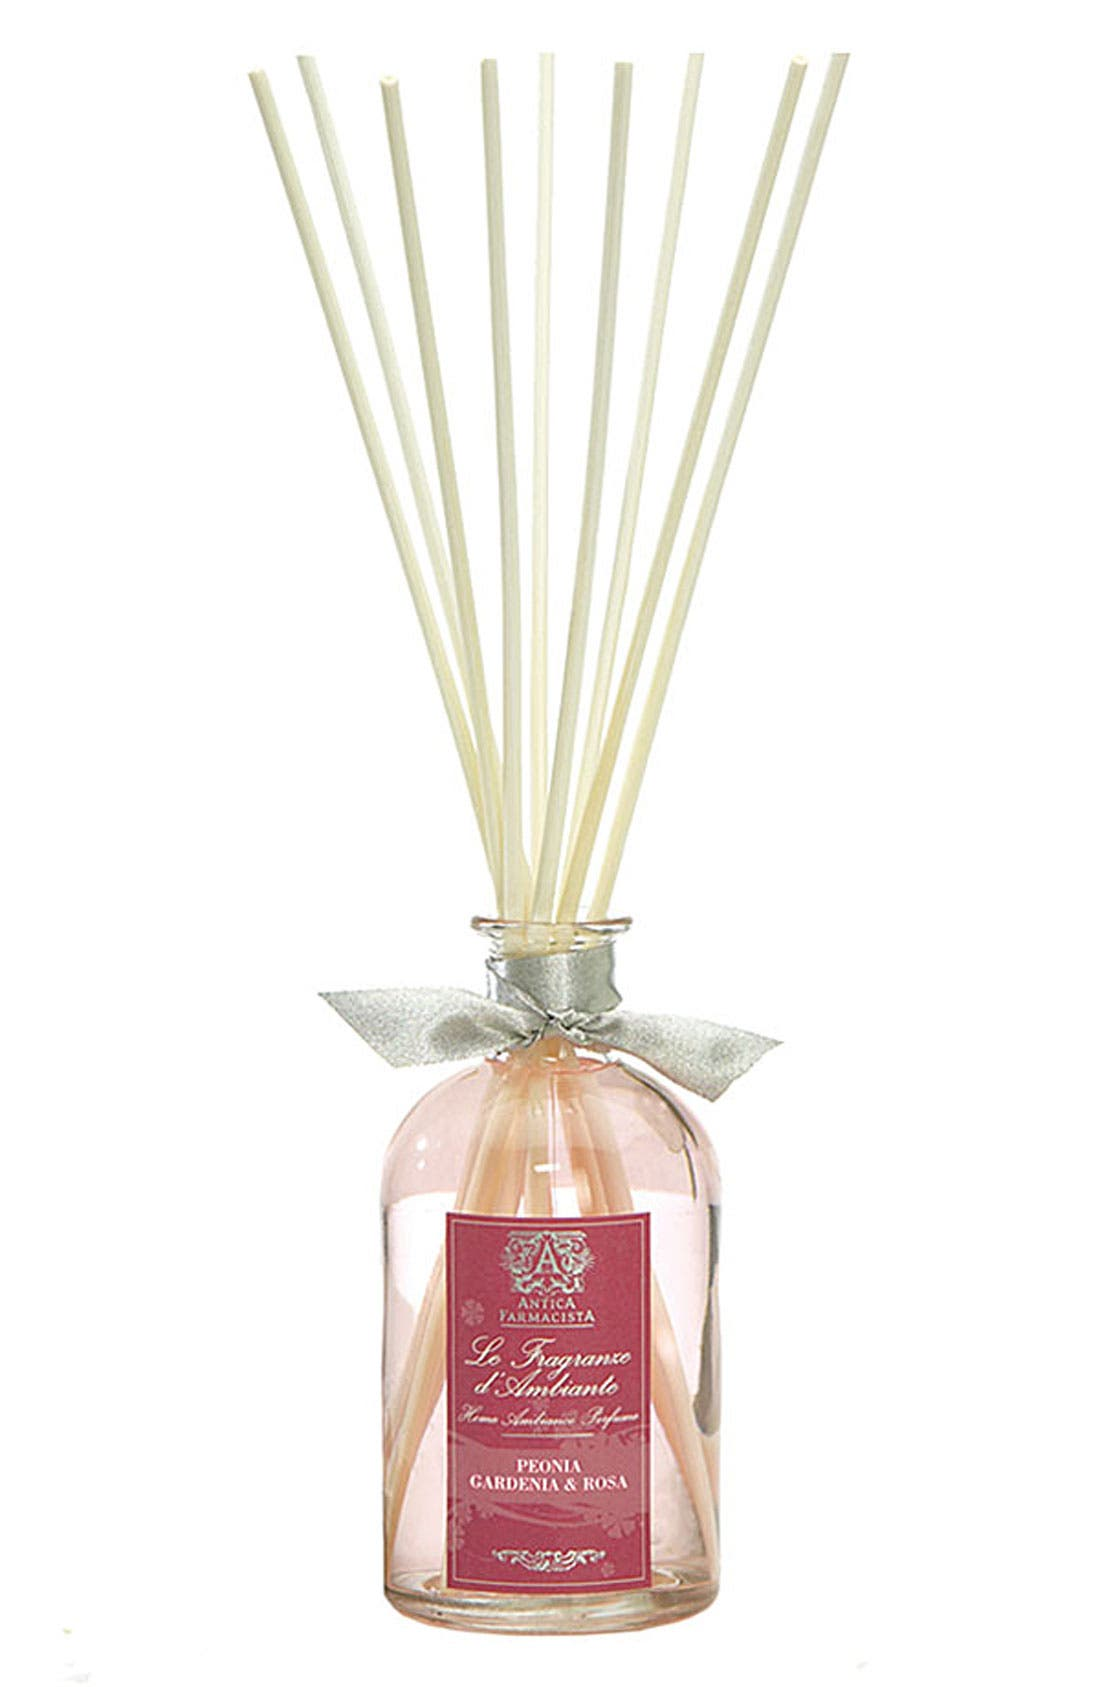 Alternate Image 1 Selected - Antica Farmacista 'Peonia Gardenia & Rosa' Home Ambiance Perfume